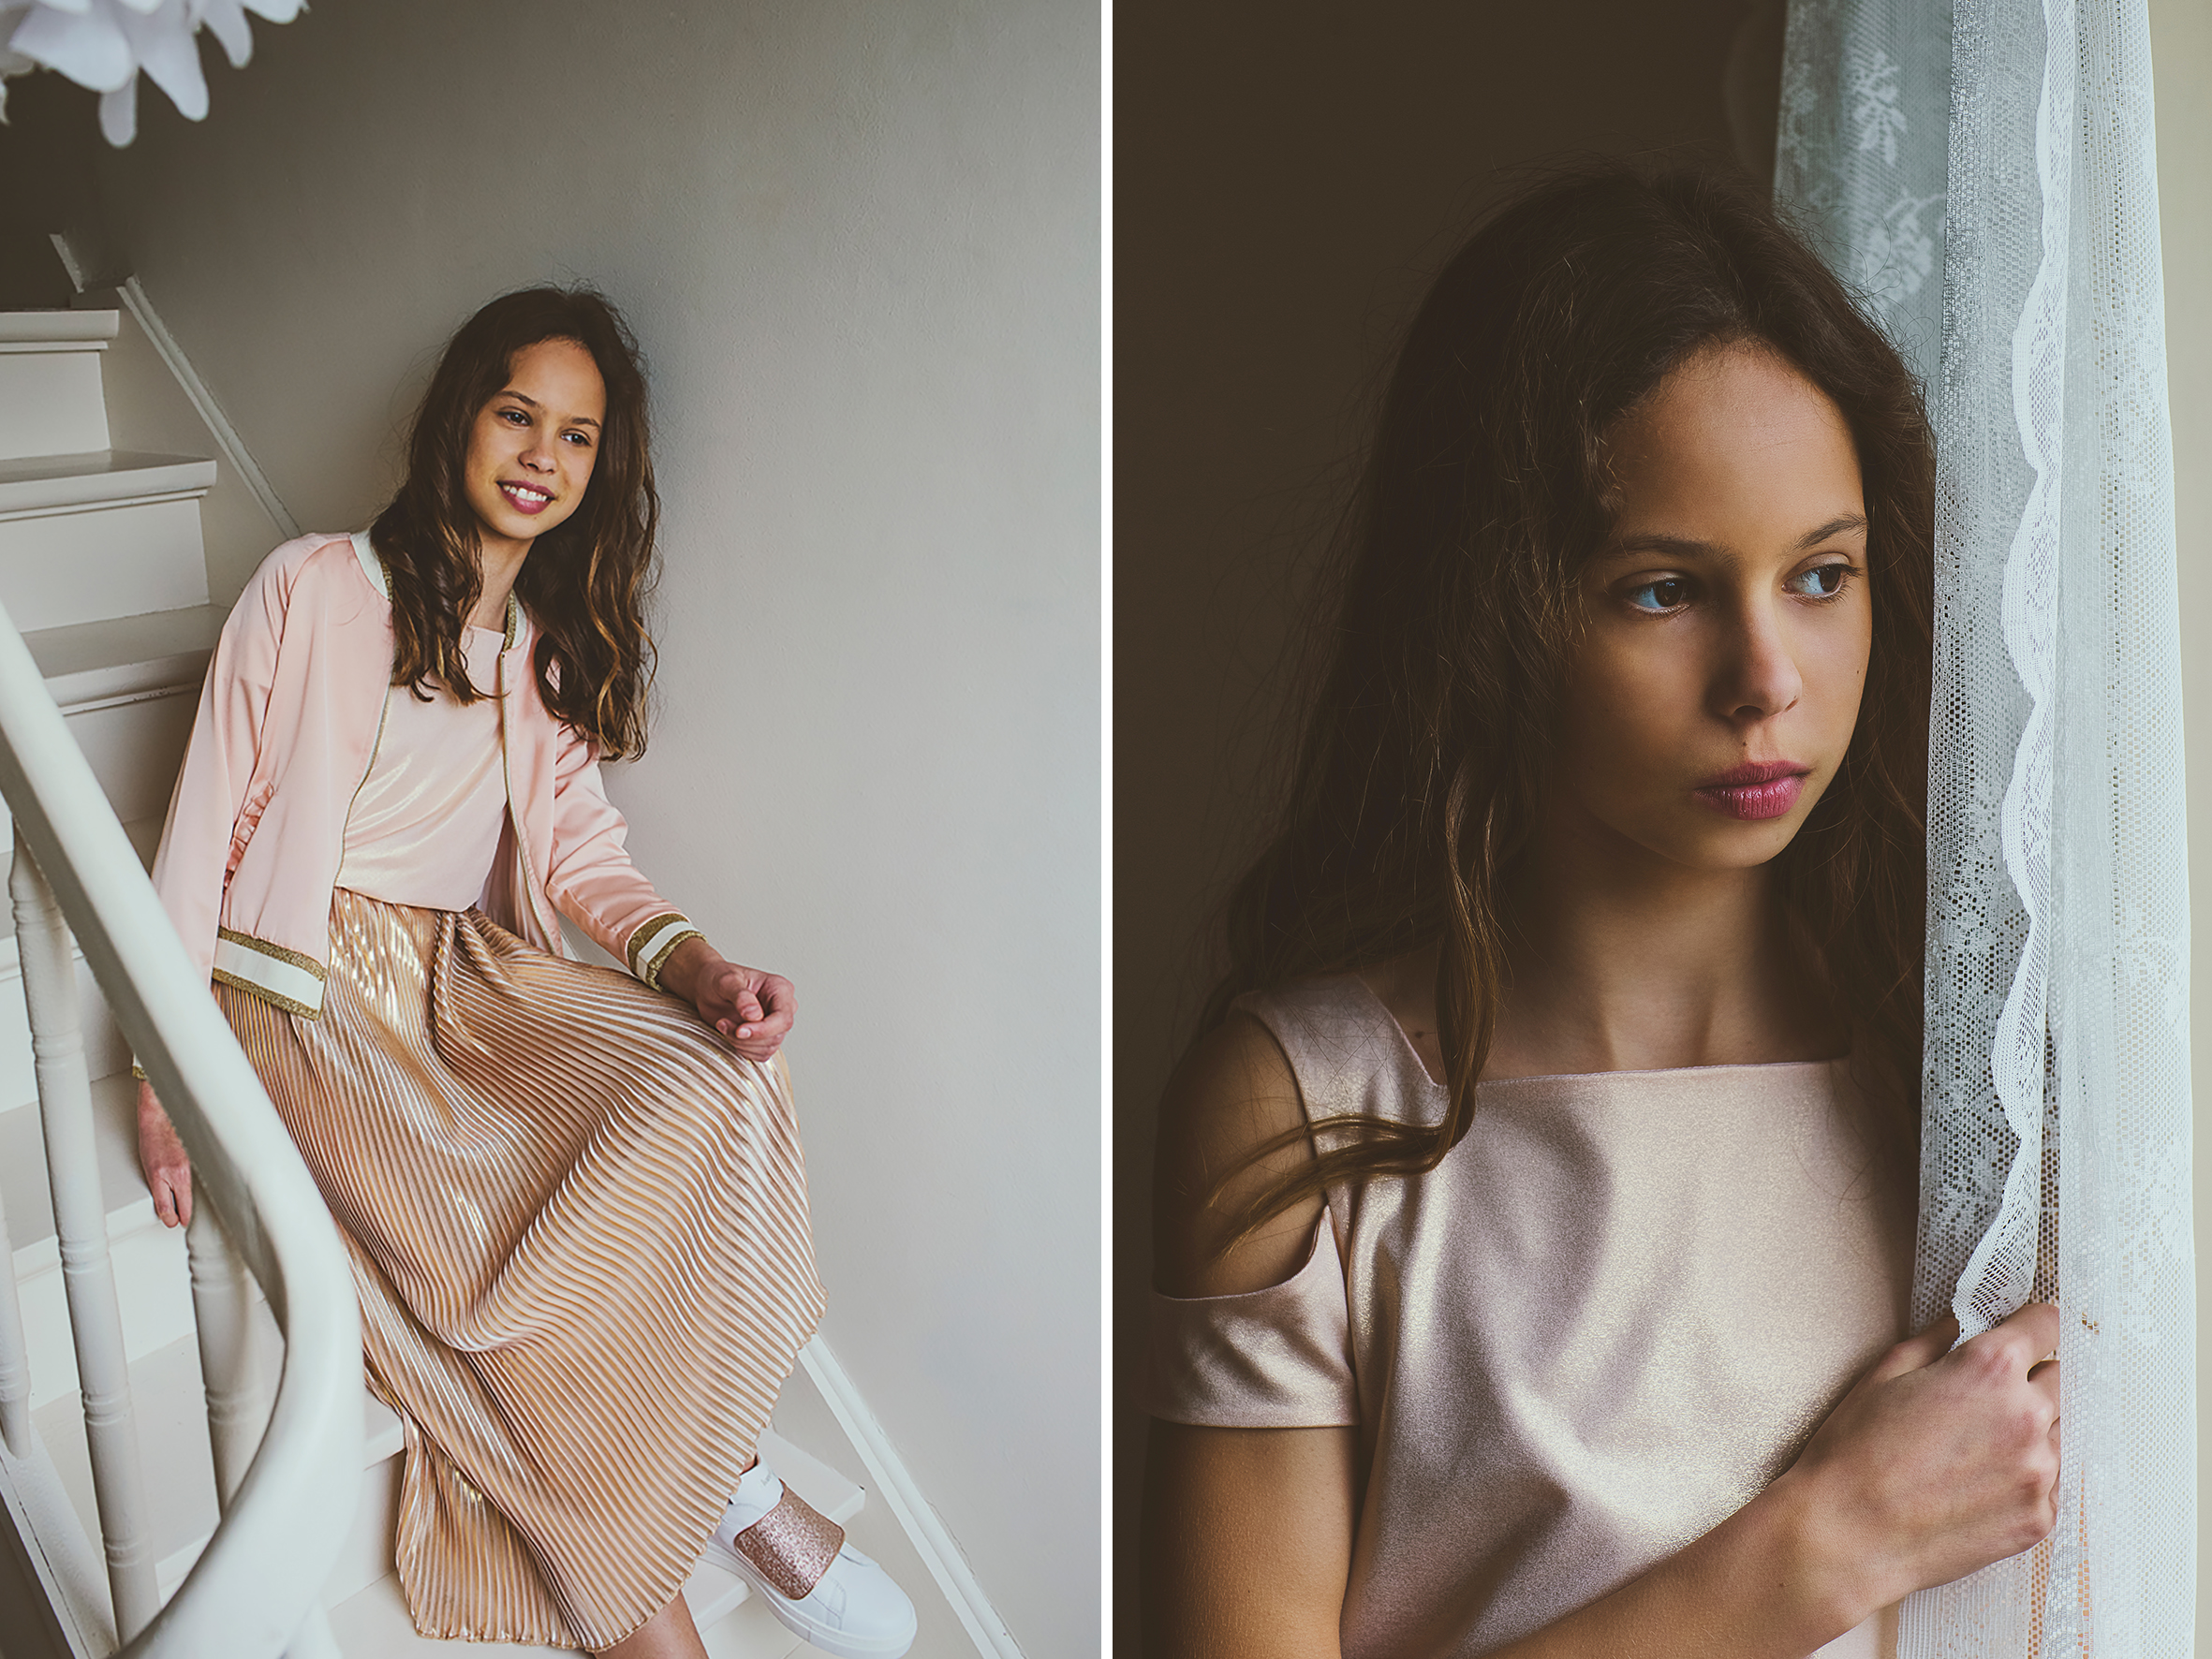 Bohemian girl fashion portret alternatieve fotografie kinderen communie